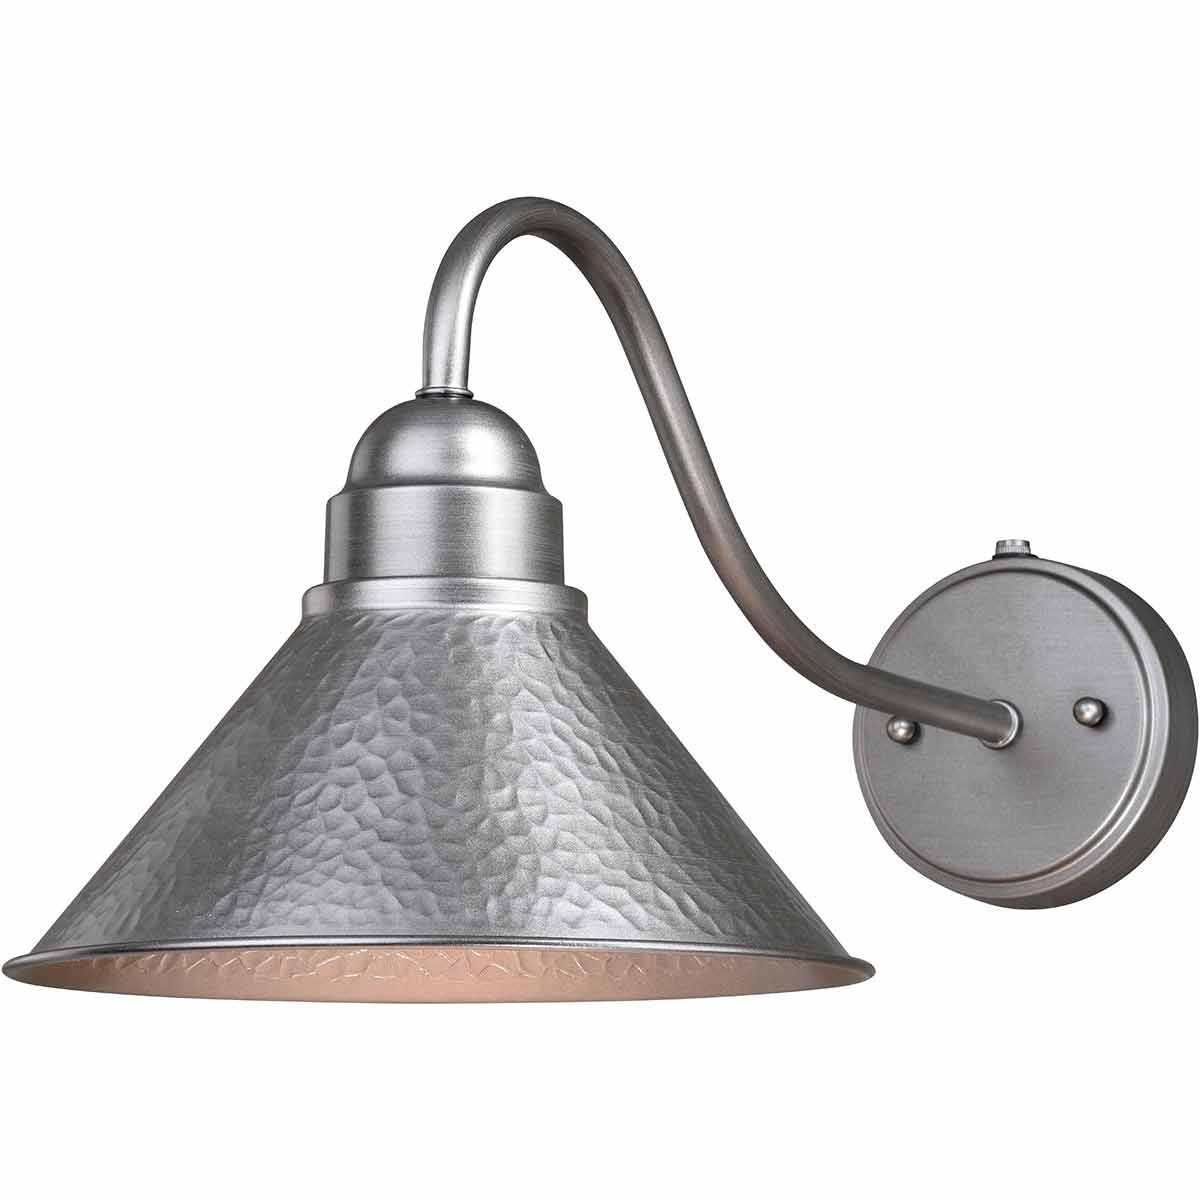 Trailhead Outdoor 10 Inch Wall Sconce with Long Arm - Pewter